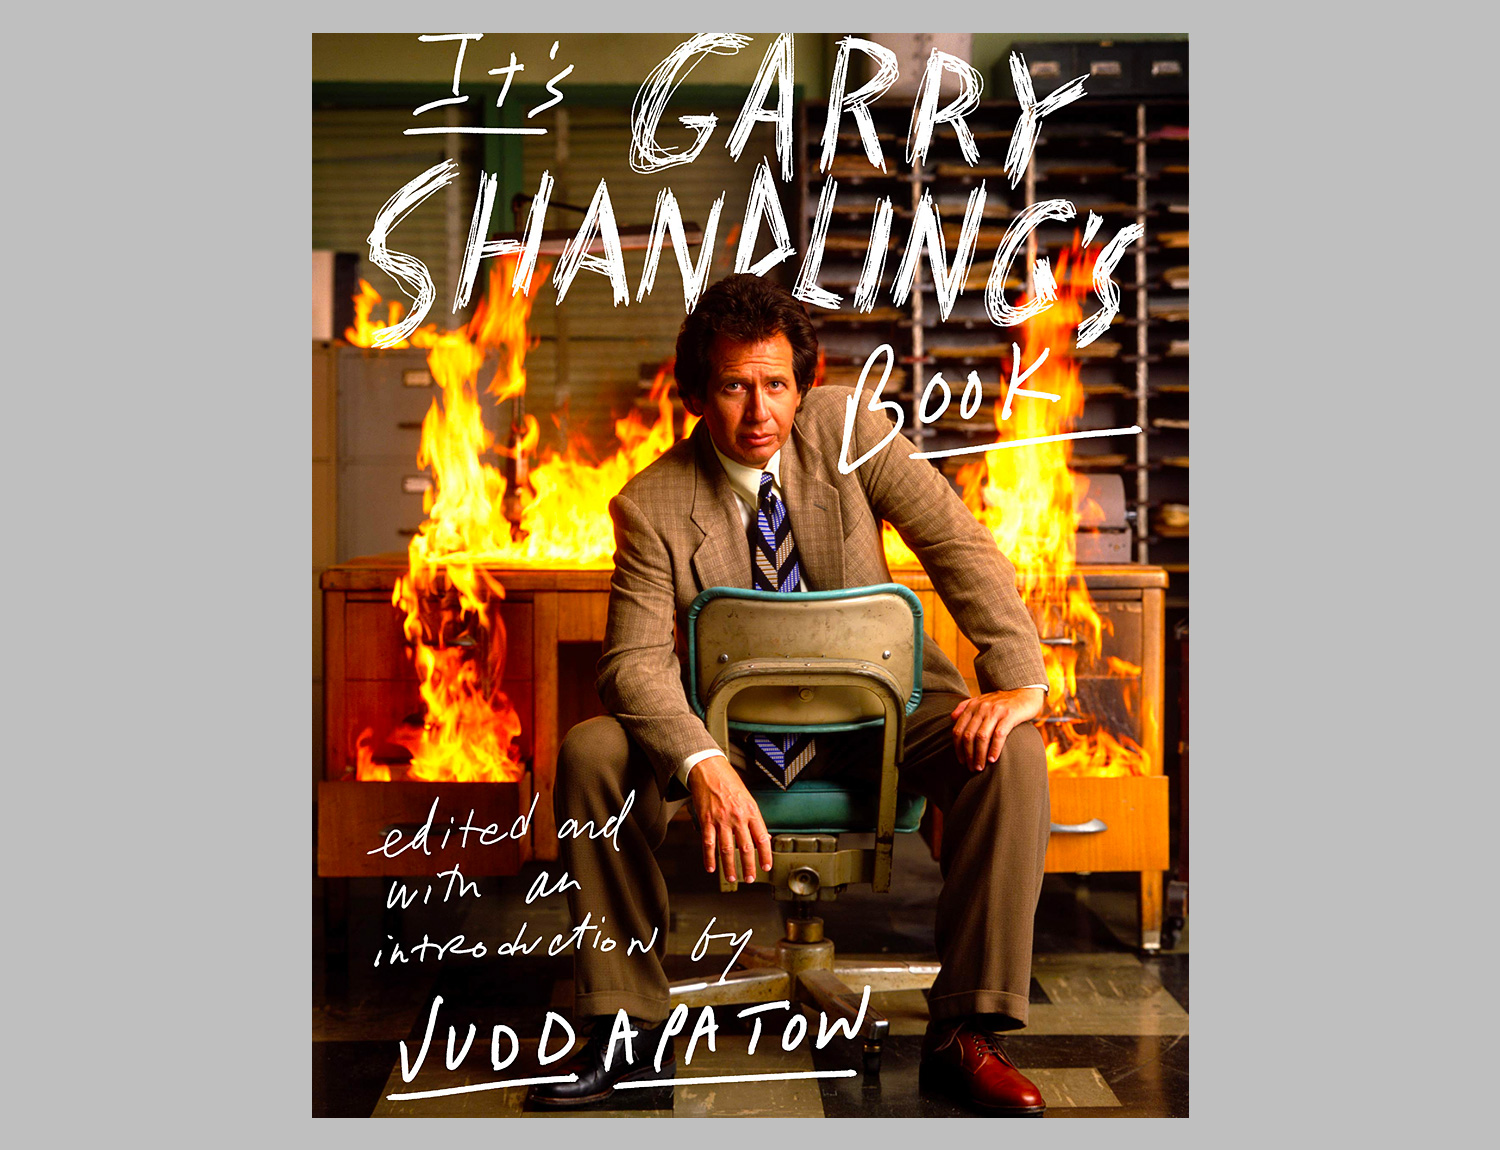 It's Garry Shandling's Book at werd.com